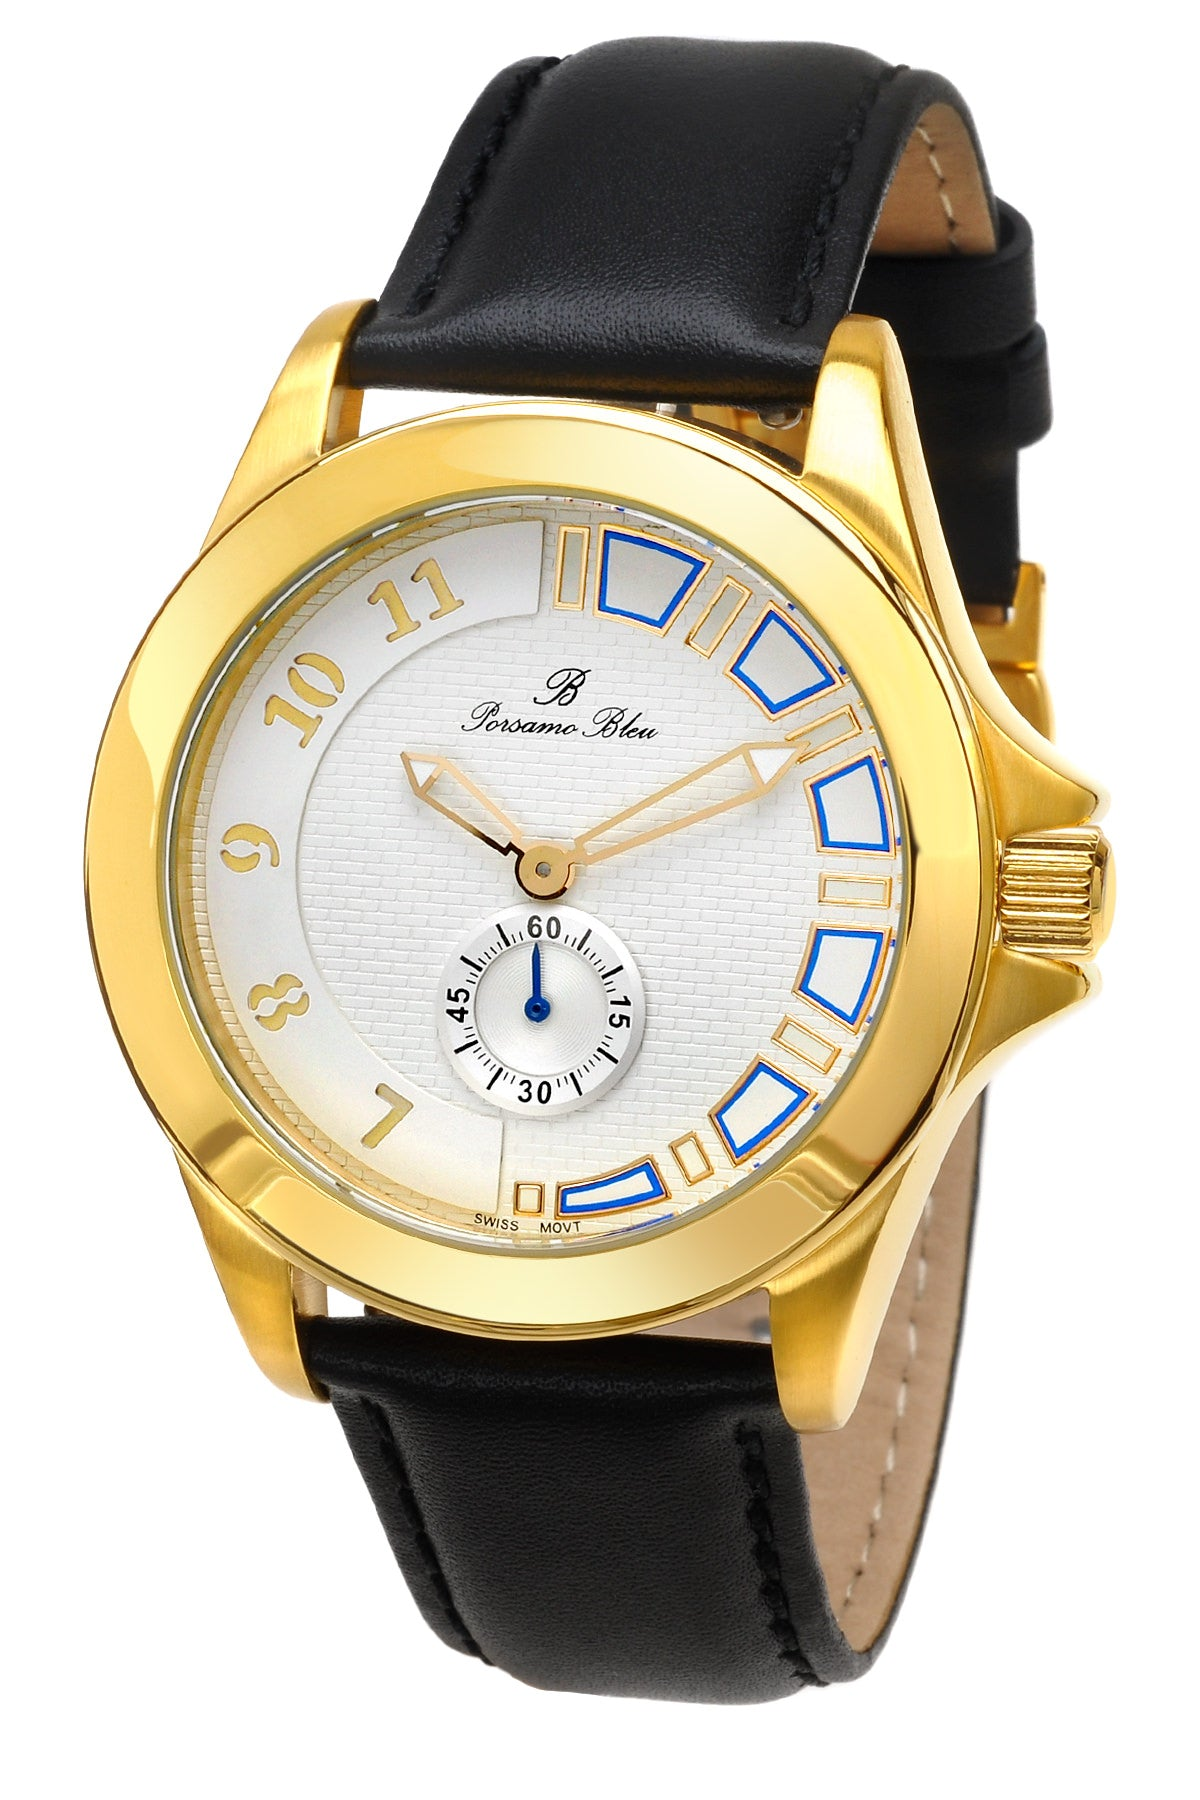 Porsamo Bleu Soho luxury men's dress watch with genuine leather band gold tone and black 042CSOL